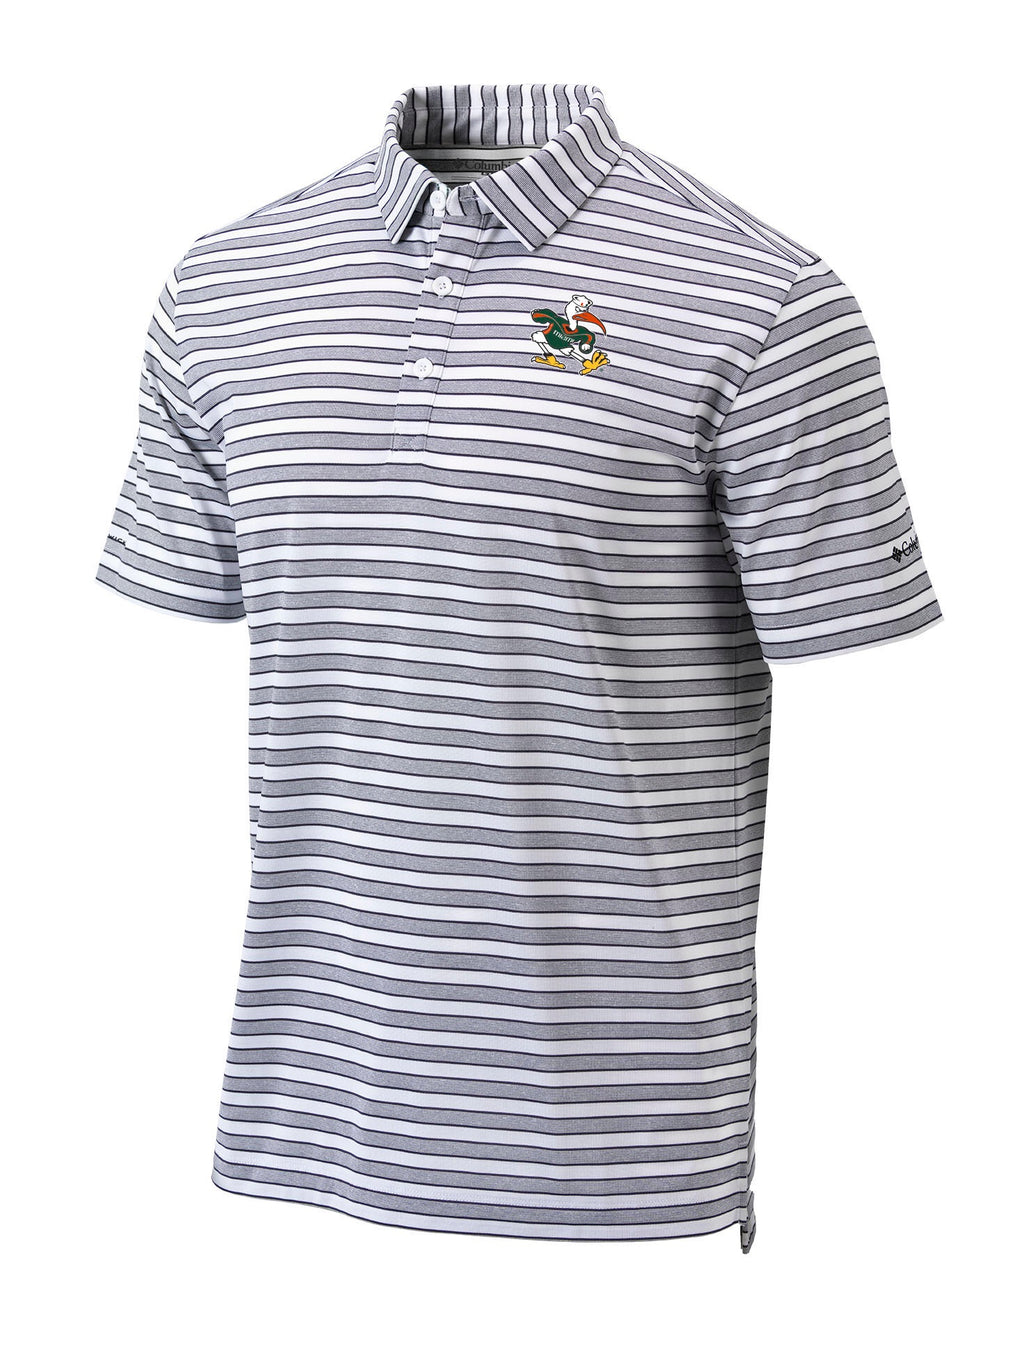 Miami Hurricanes  Columbia Omni-Wick Members Polo - White/Grey